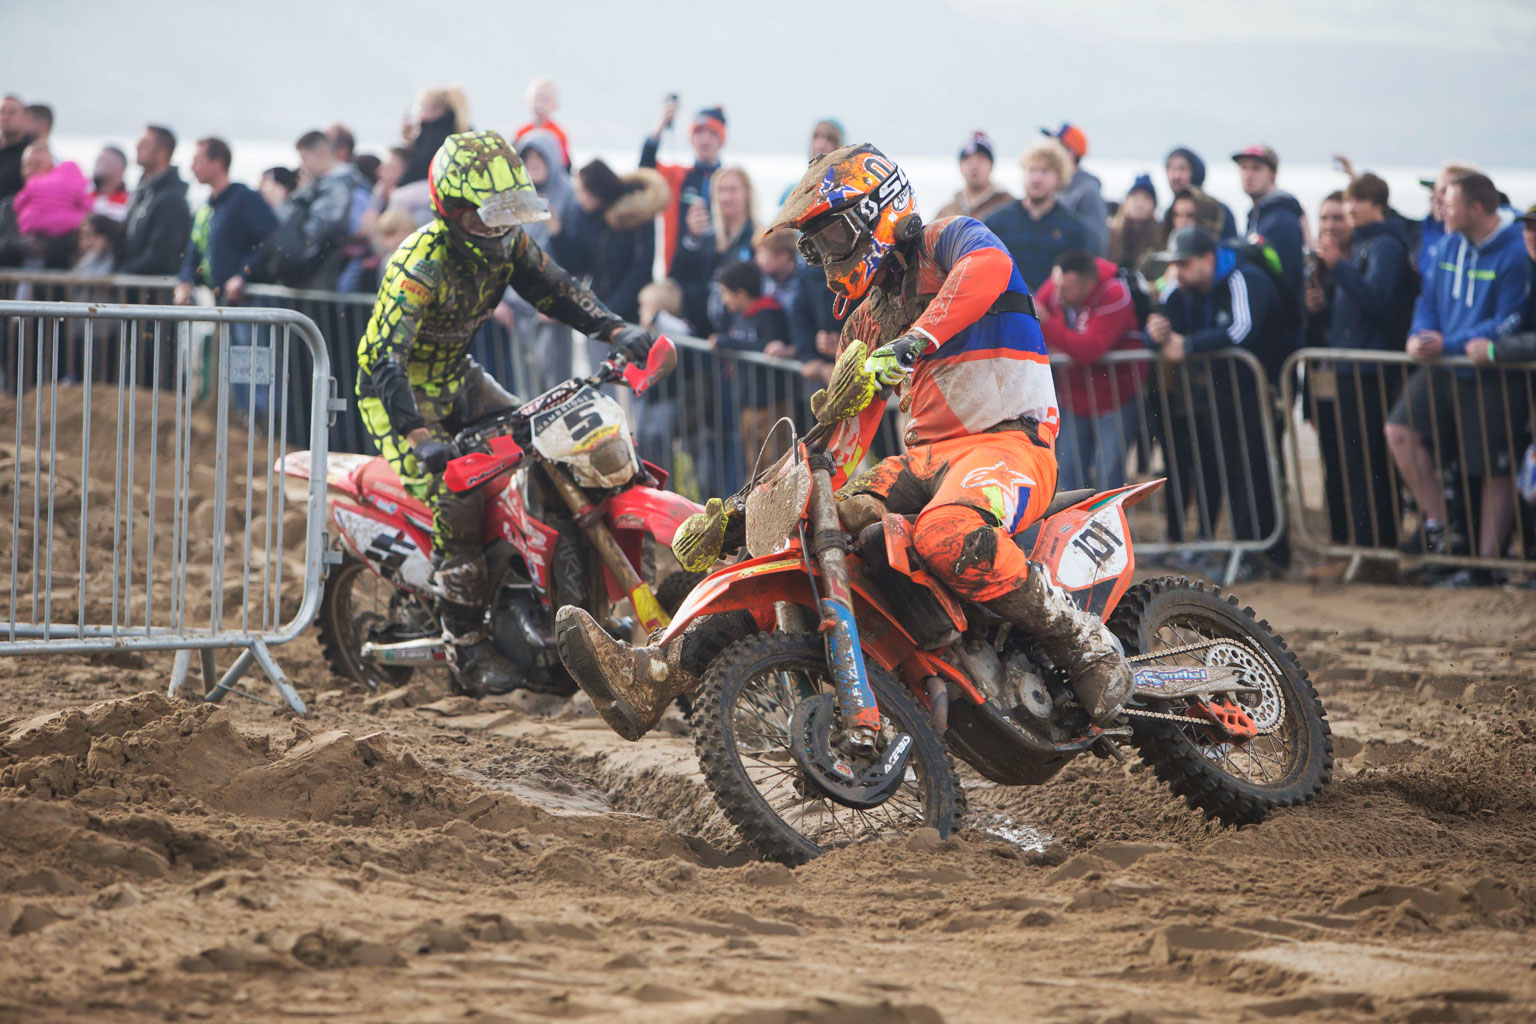 David Knight (KTM) and Graeme Irwin (Buildbase Honda) battle